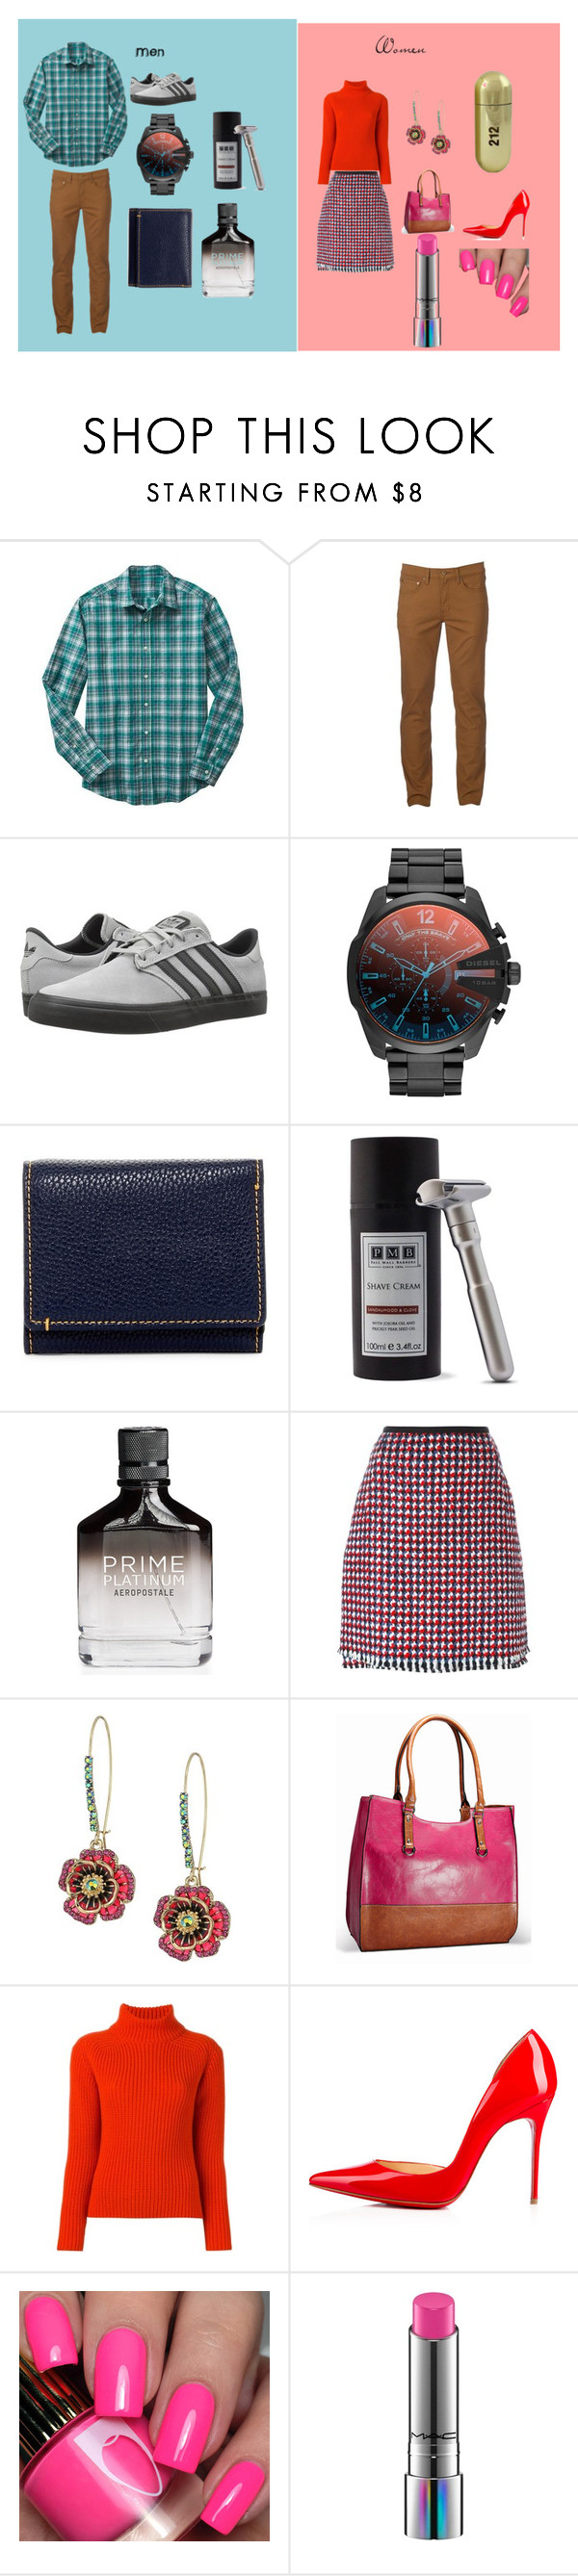 """""""Opposites"""" by shannongarner ❤ liked on Polyvore featuring Gap, Urban Pipeline, adidas, Diesel, Robert Graham, Aéropostale, Odeeh, Betsey Johnson, Carolina Herrera and Avenue"""